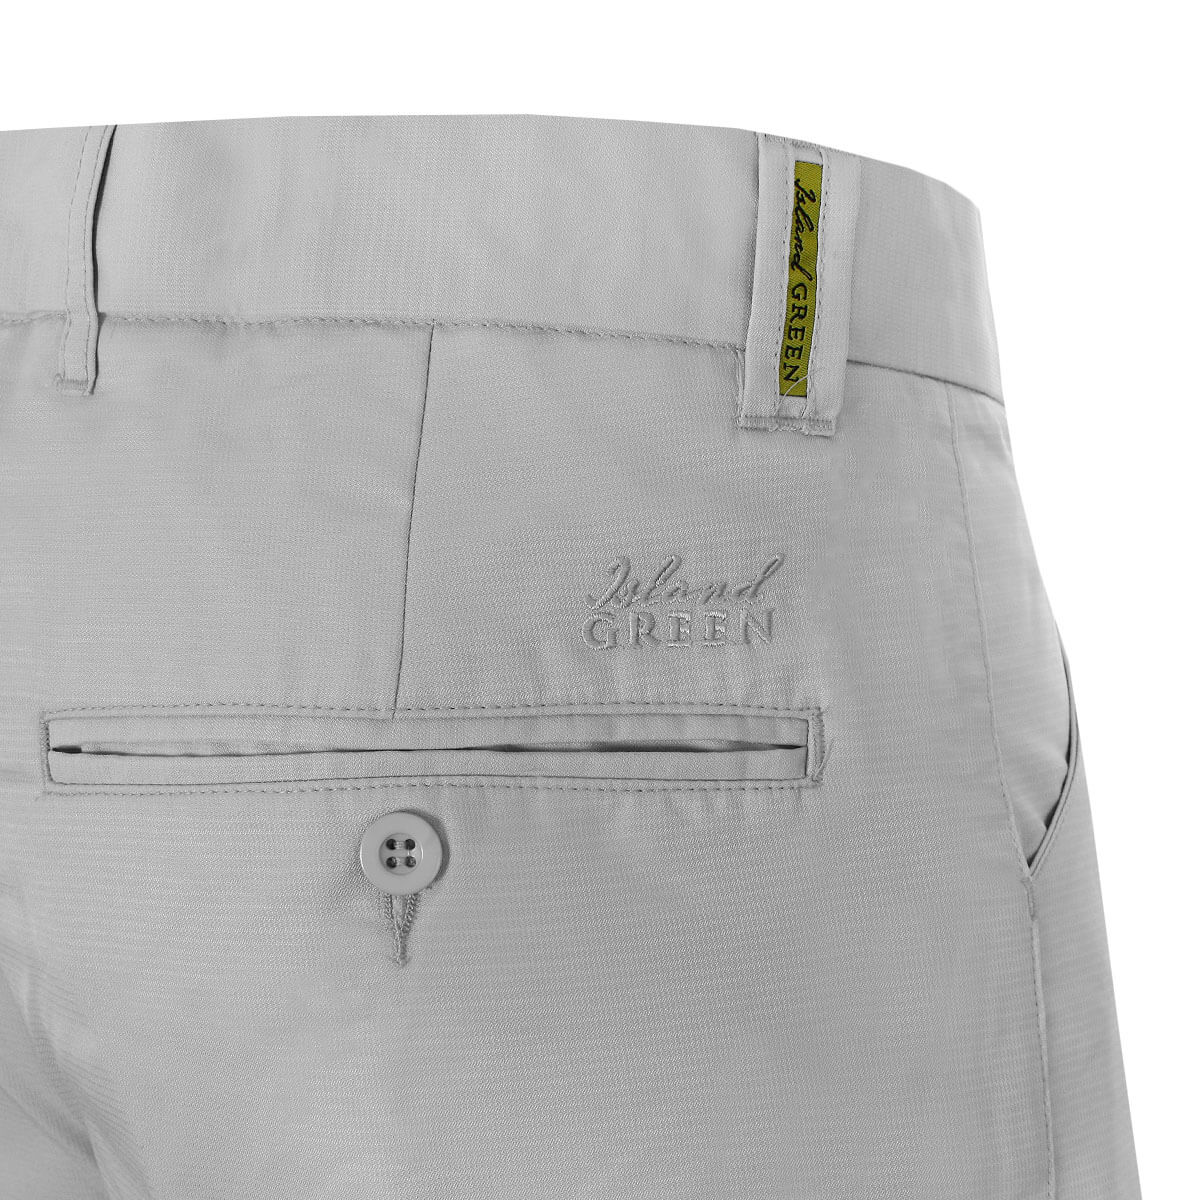 Island-Green-Breathable-Tapered-Slim-Fit-Mens-Golf-Trousers-47-OFF-RRP thumbnail 16